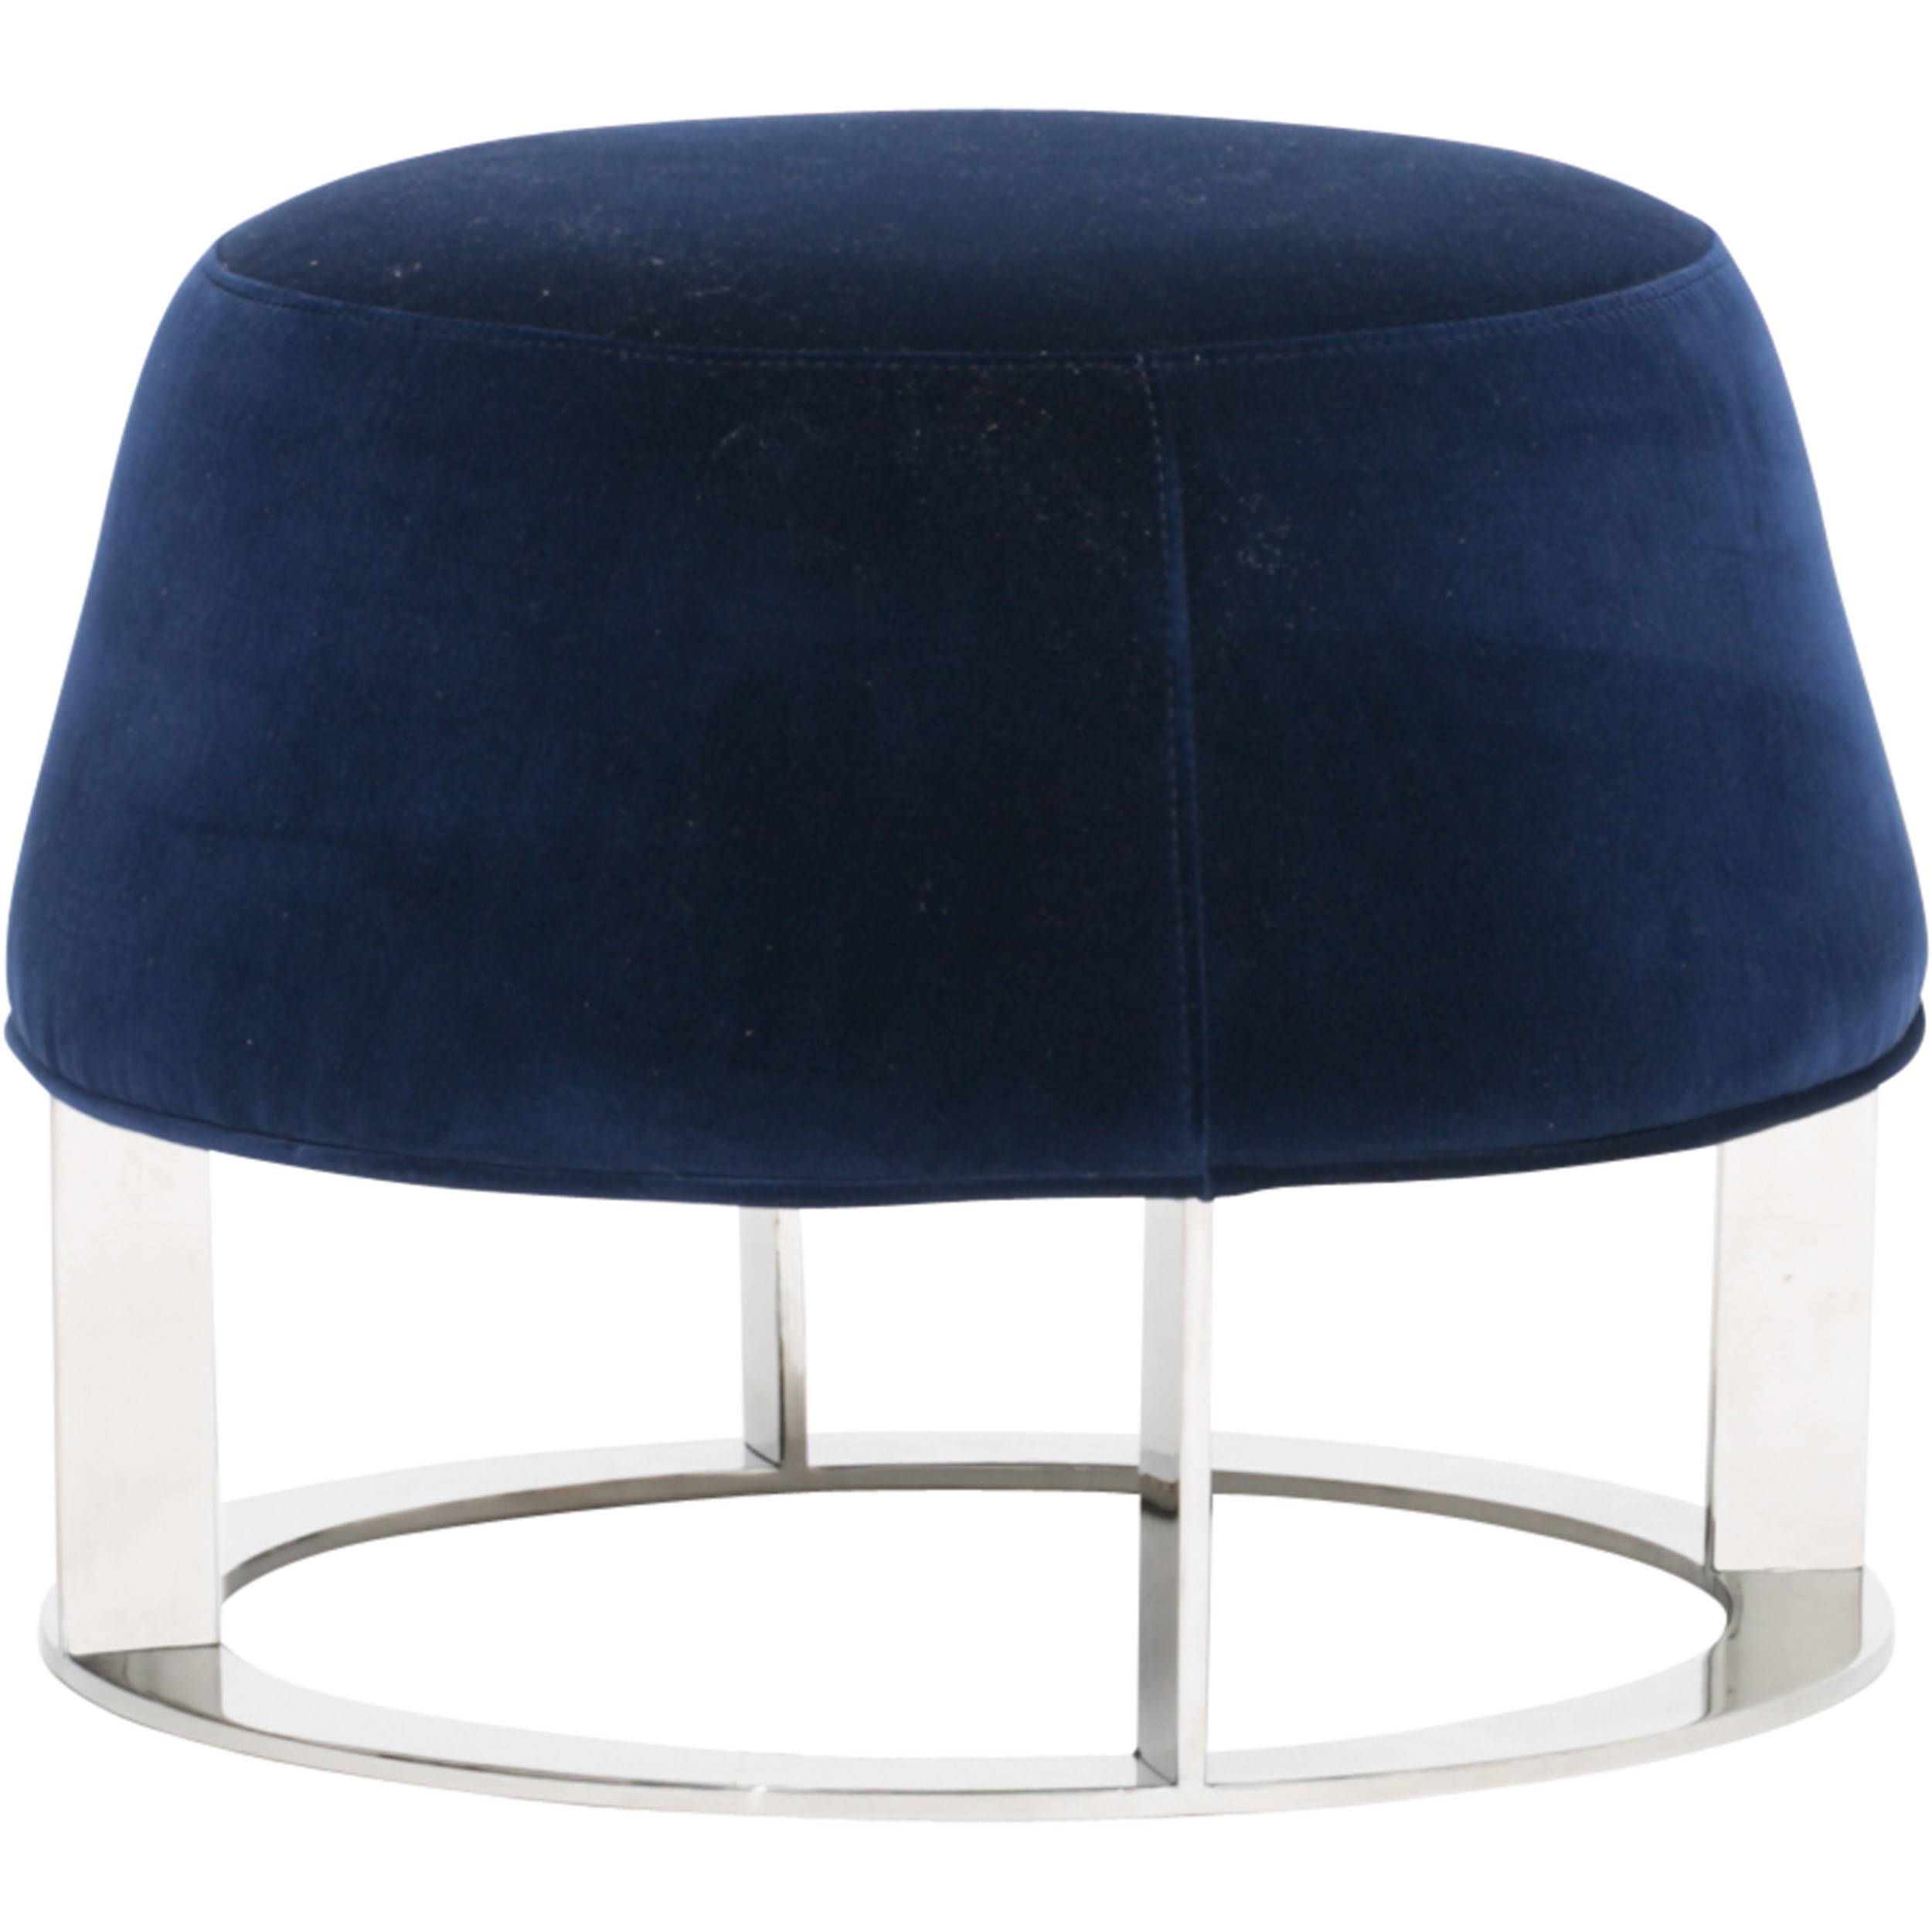 cavo small ott giotto blue cocktail accent tables metal table furniture portable rabat teal brass frame coffee spotlight lamp west elm target pink marble perspex bedside round